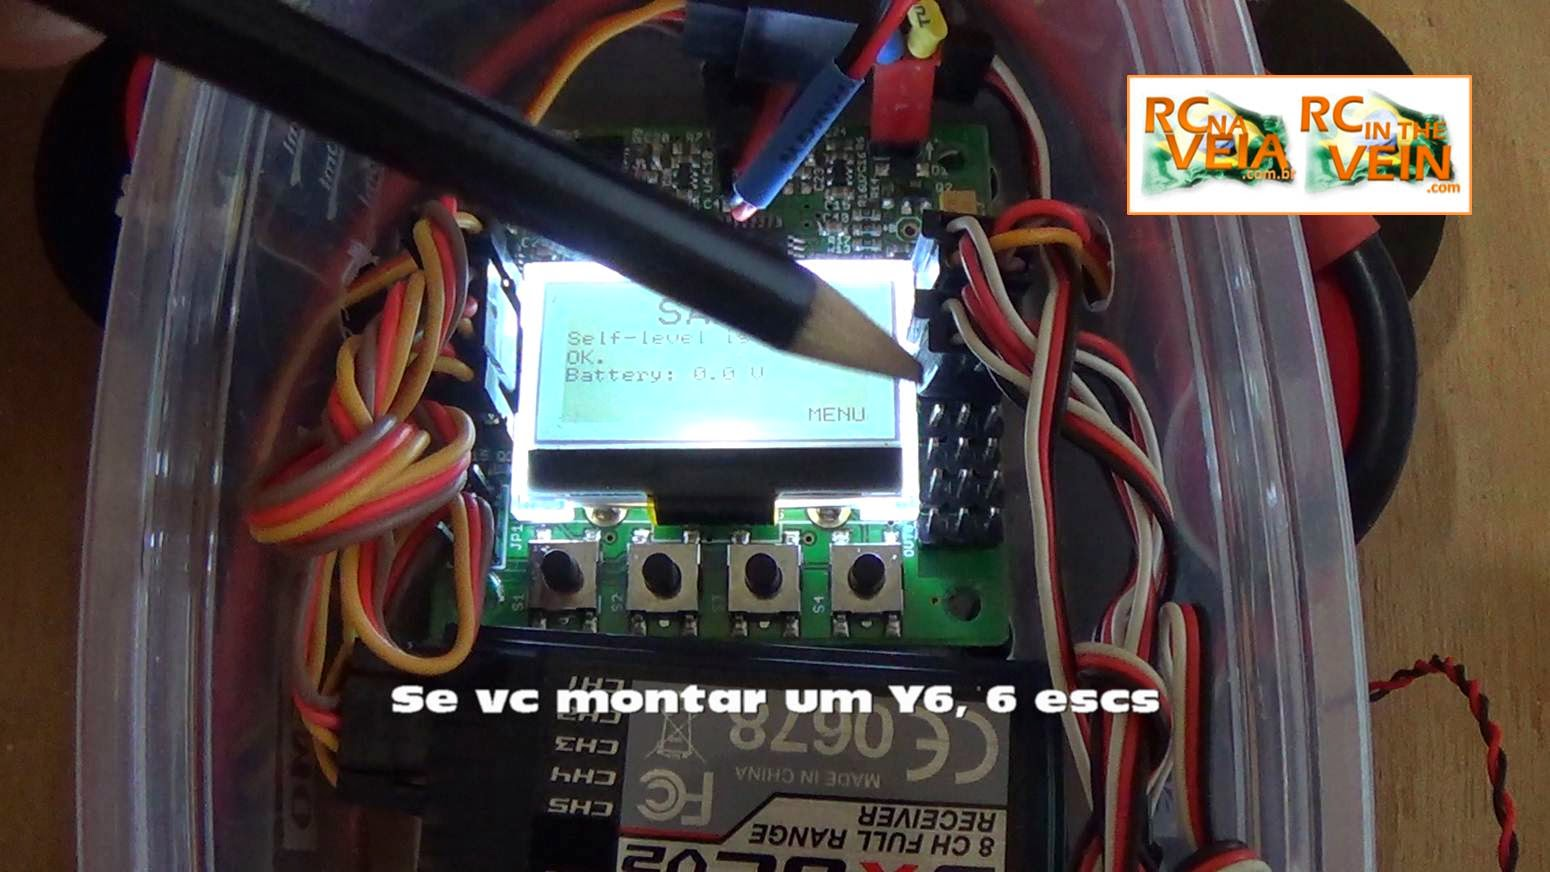 Rc In The Vein 2014 Kk2 Wiring Diagram Some Pictures To Show